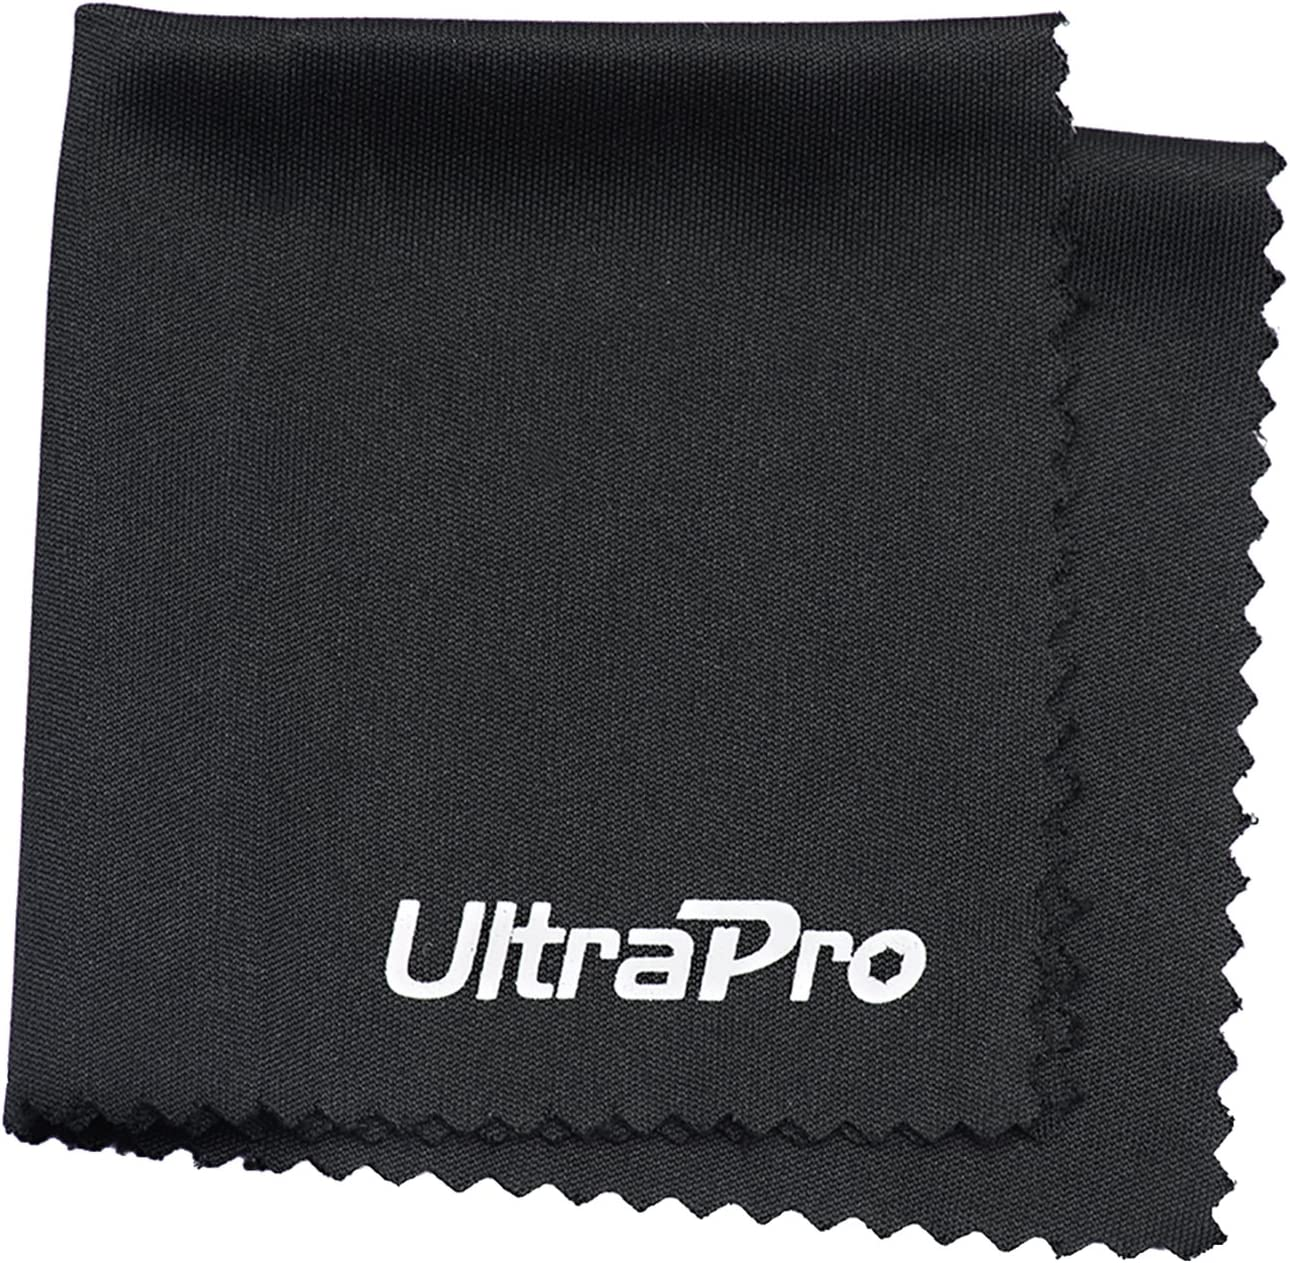 for DJI-Mavic Variable ND UltraPro Bundle Includes: Deluxe Microfiber Cleaning Cloth ND2-ND400